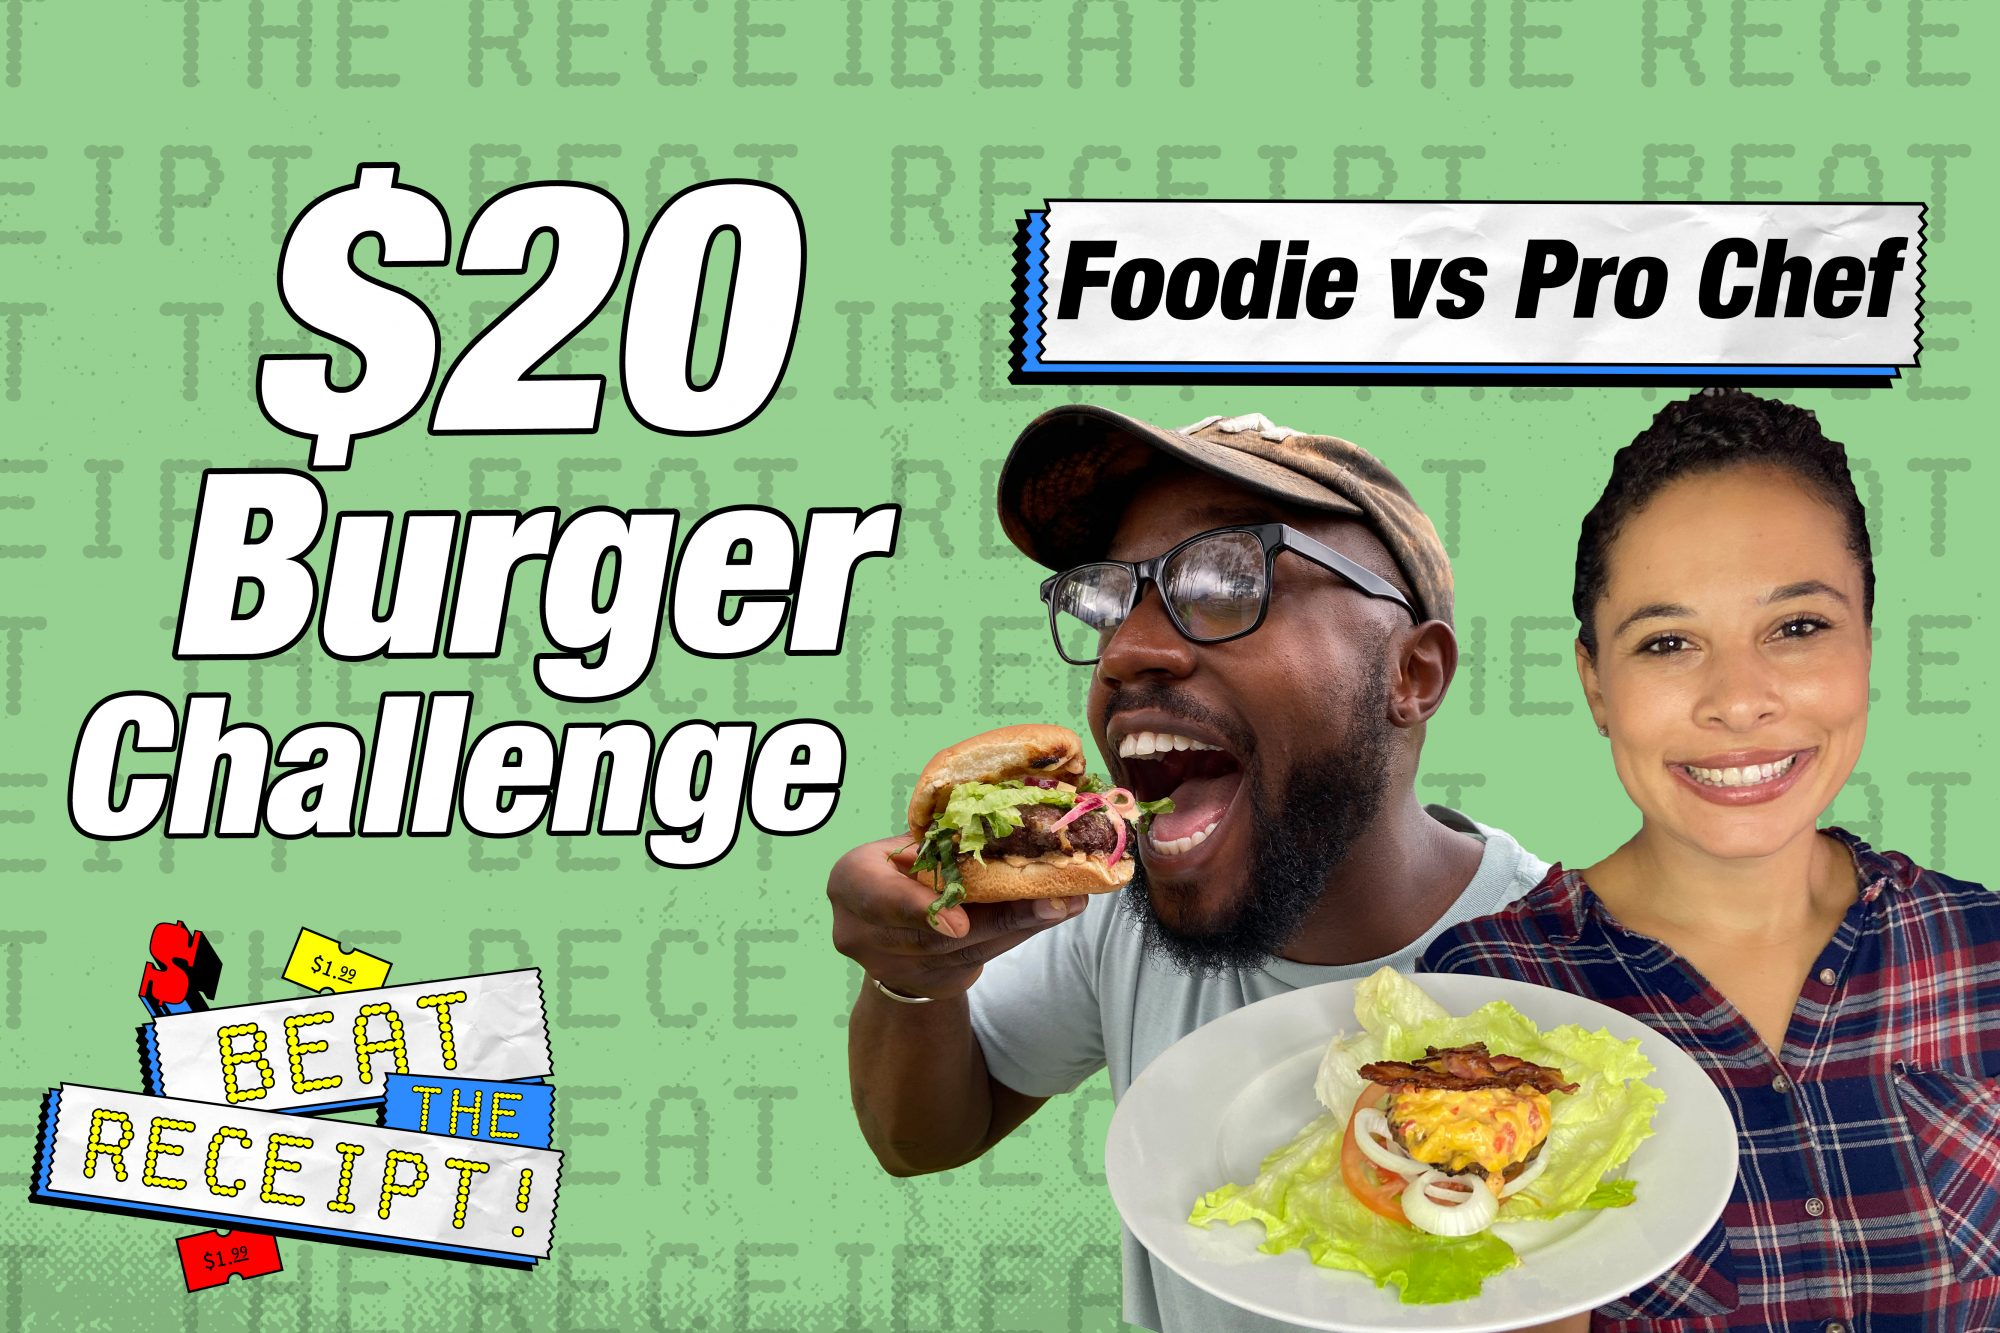 Beat the Receipt Burger Challenge